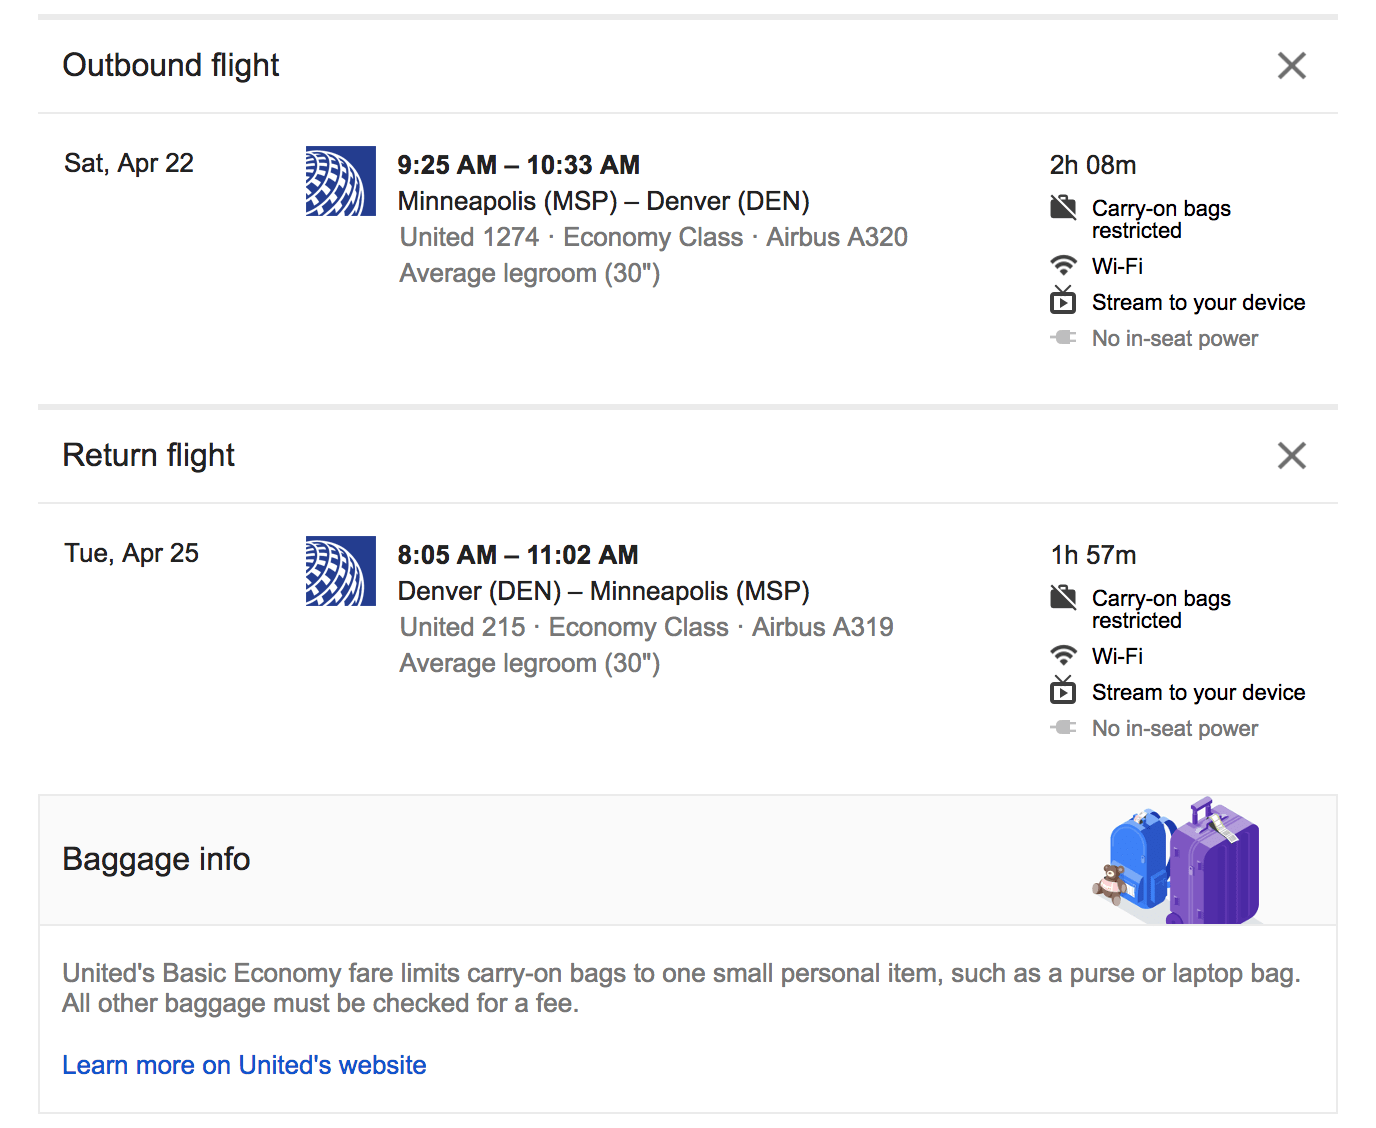 google flights tells you the baggage rules on some tickets